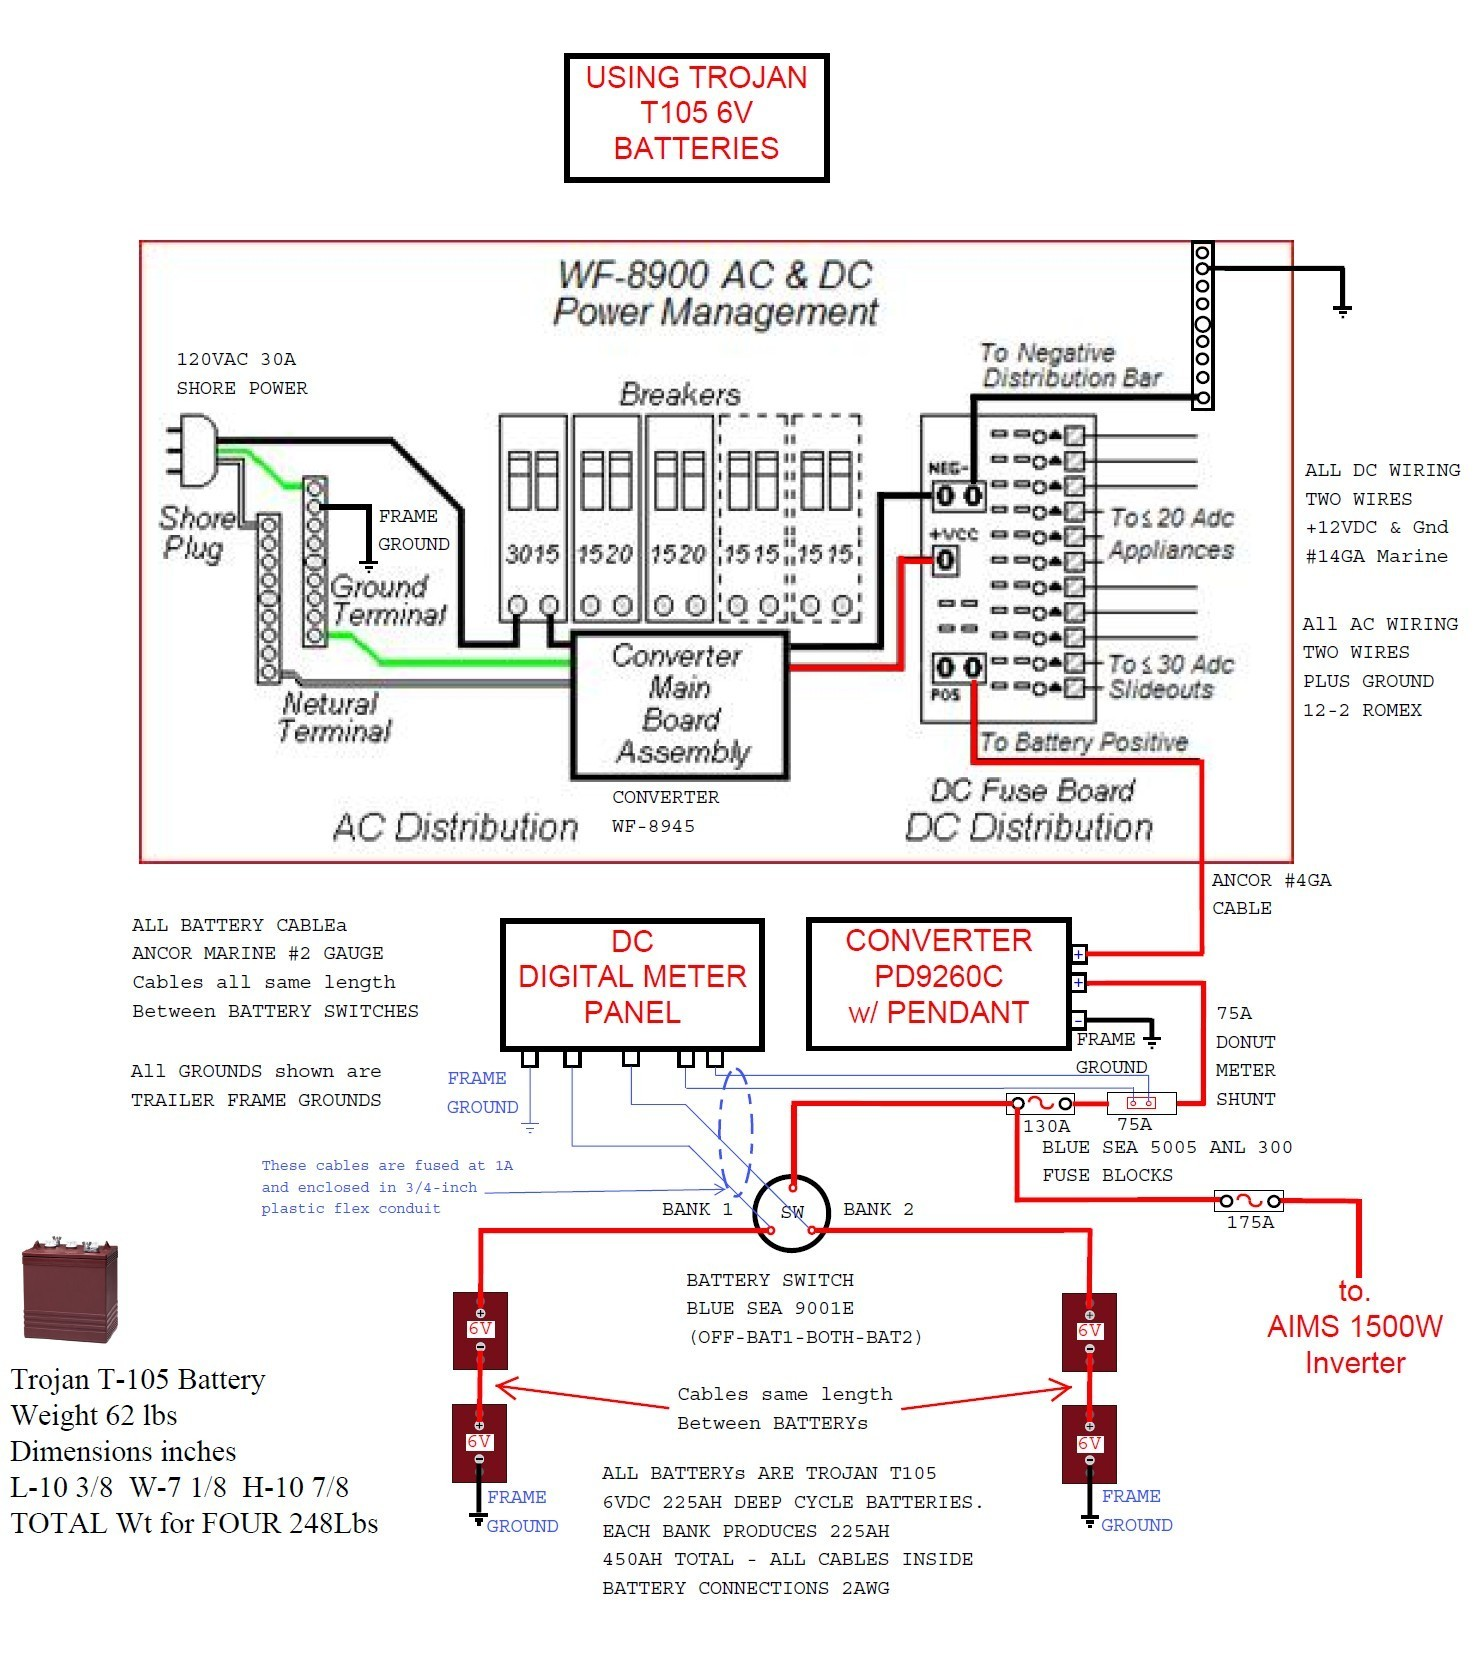 Wfco 8955    Wiring       Diagram         Wiring       Diagram    Image